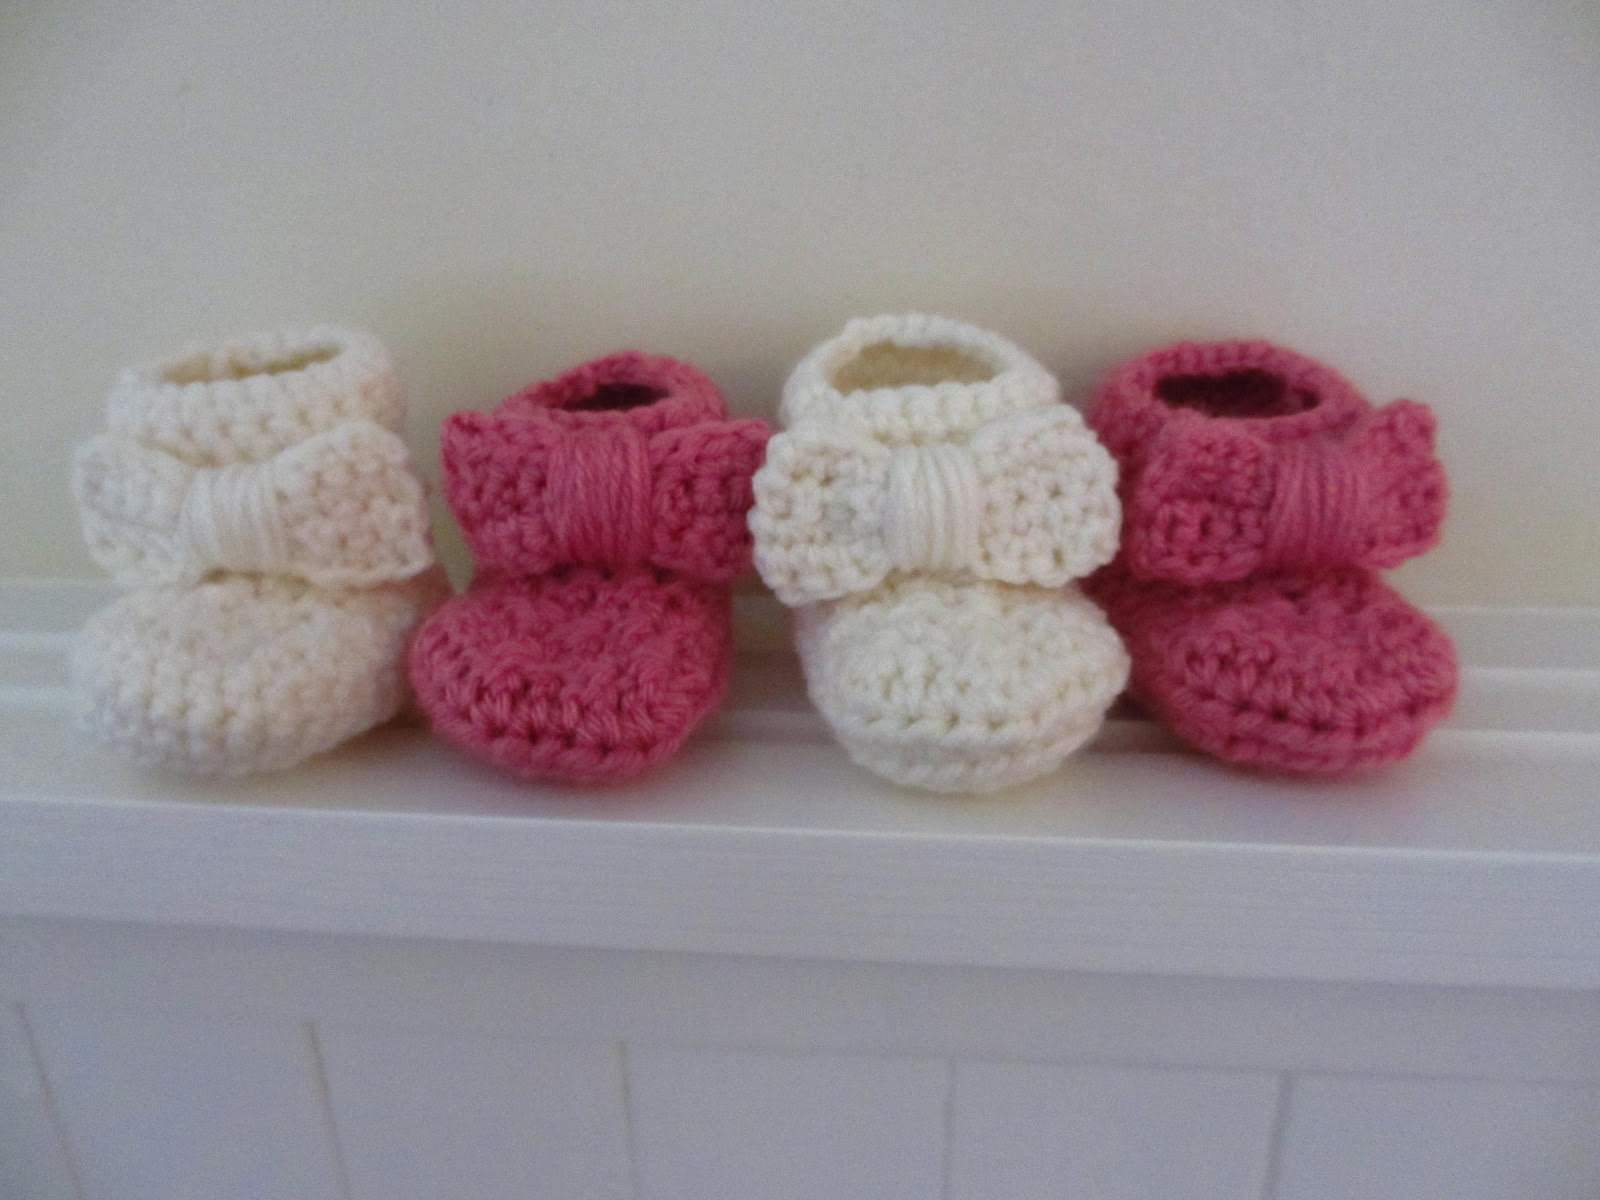 Free Crochet Pattern Of Baby Booties : Jays Boutique Blog: FREE PATTERN: Bow Baby Booties